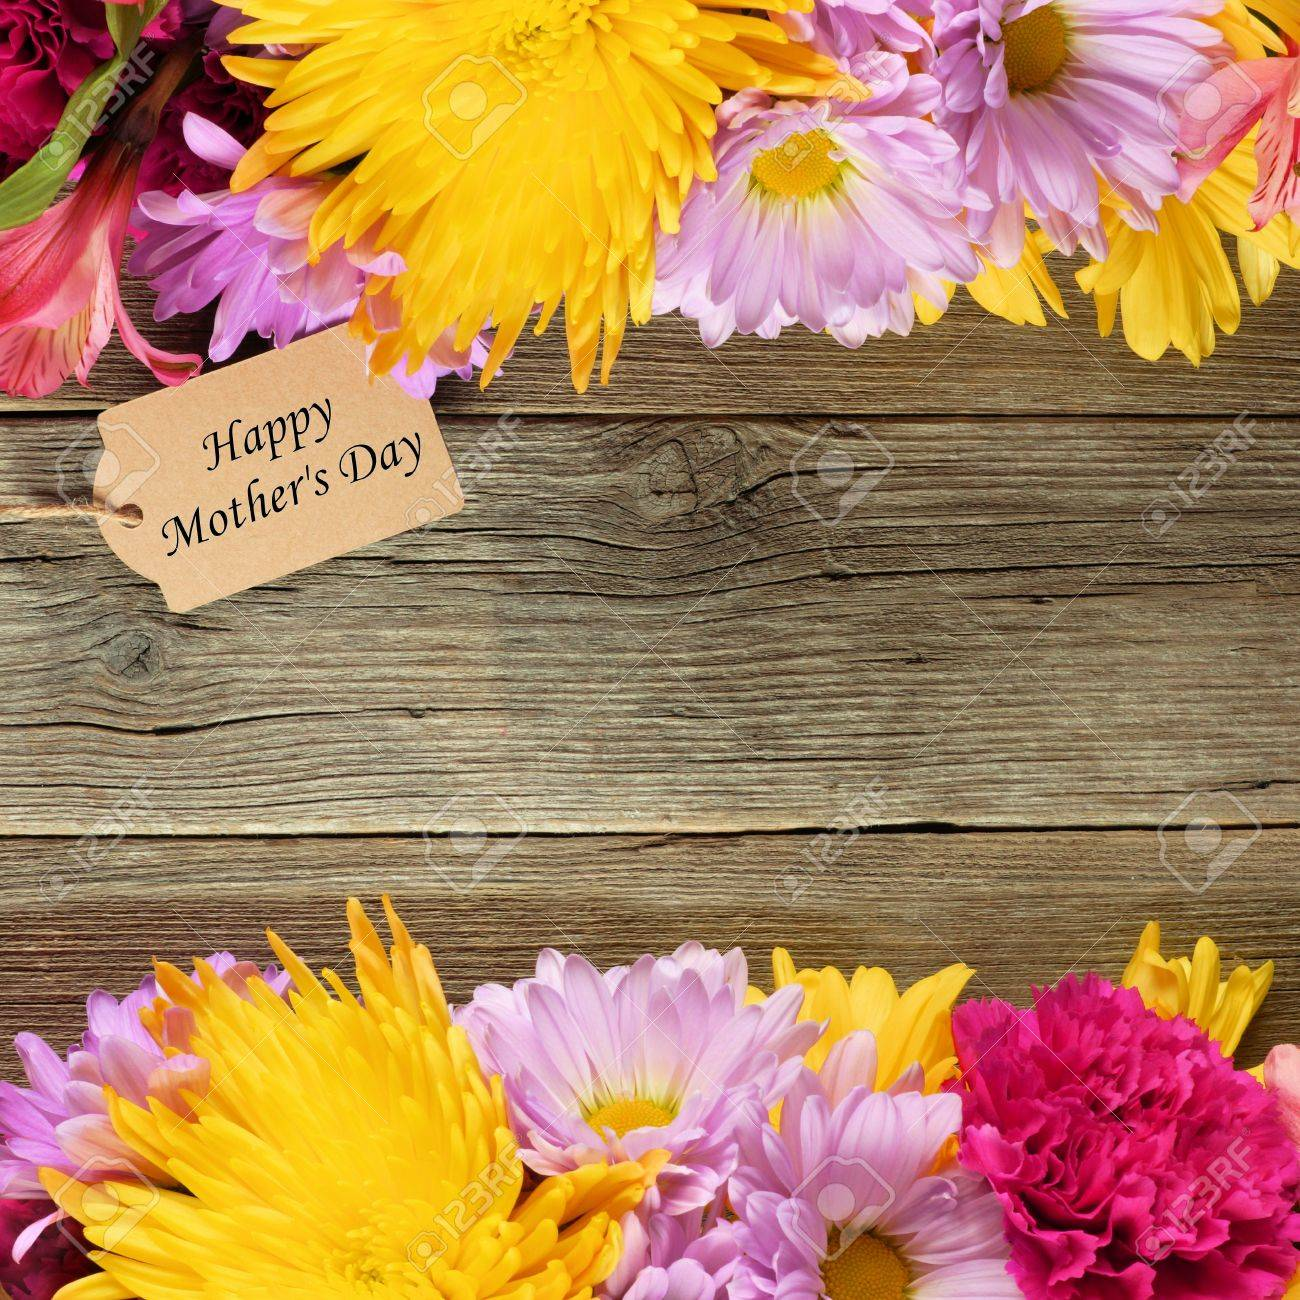 Double Border Of Flowers With Happy Mothers Day Tag Against A Rustic Wood Background Stock Photo